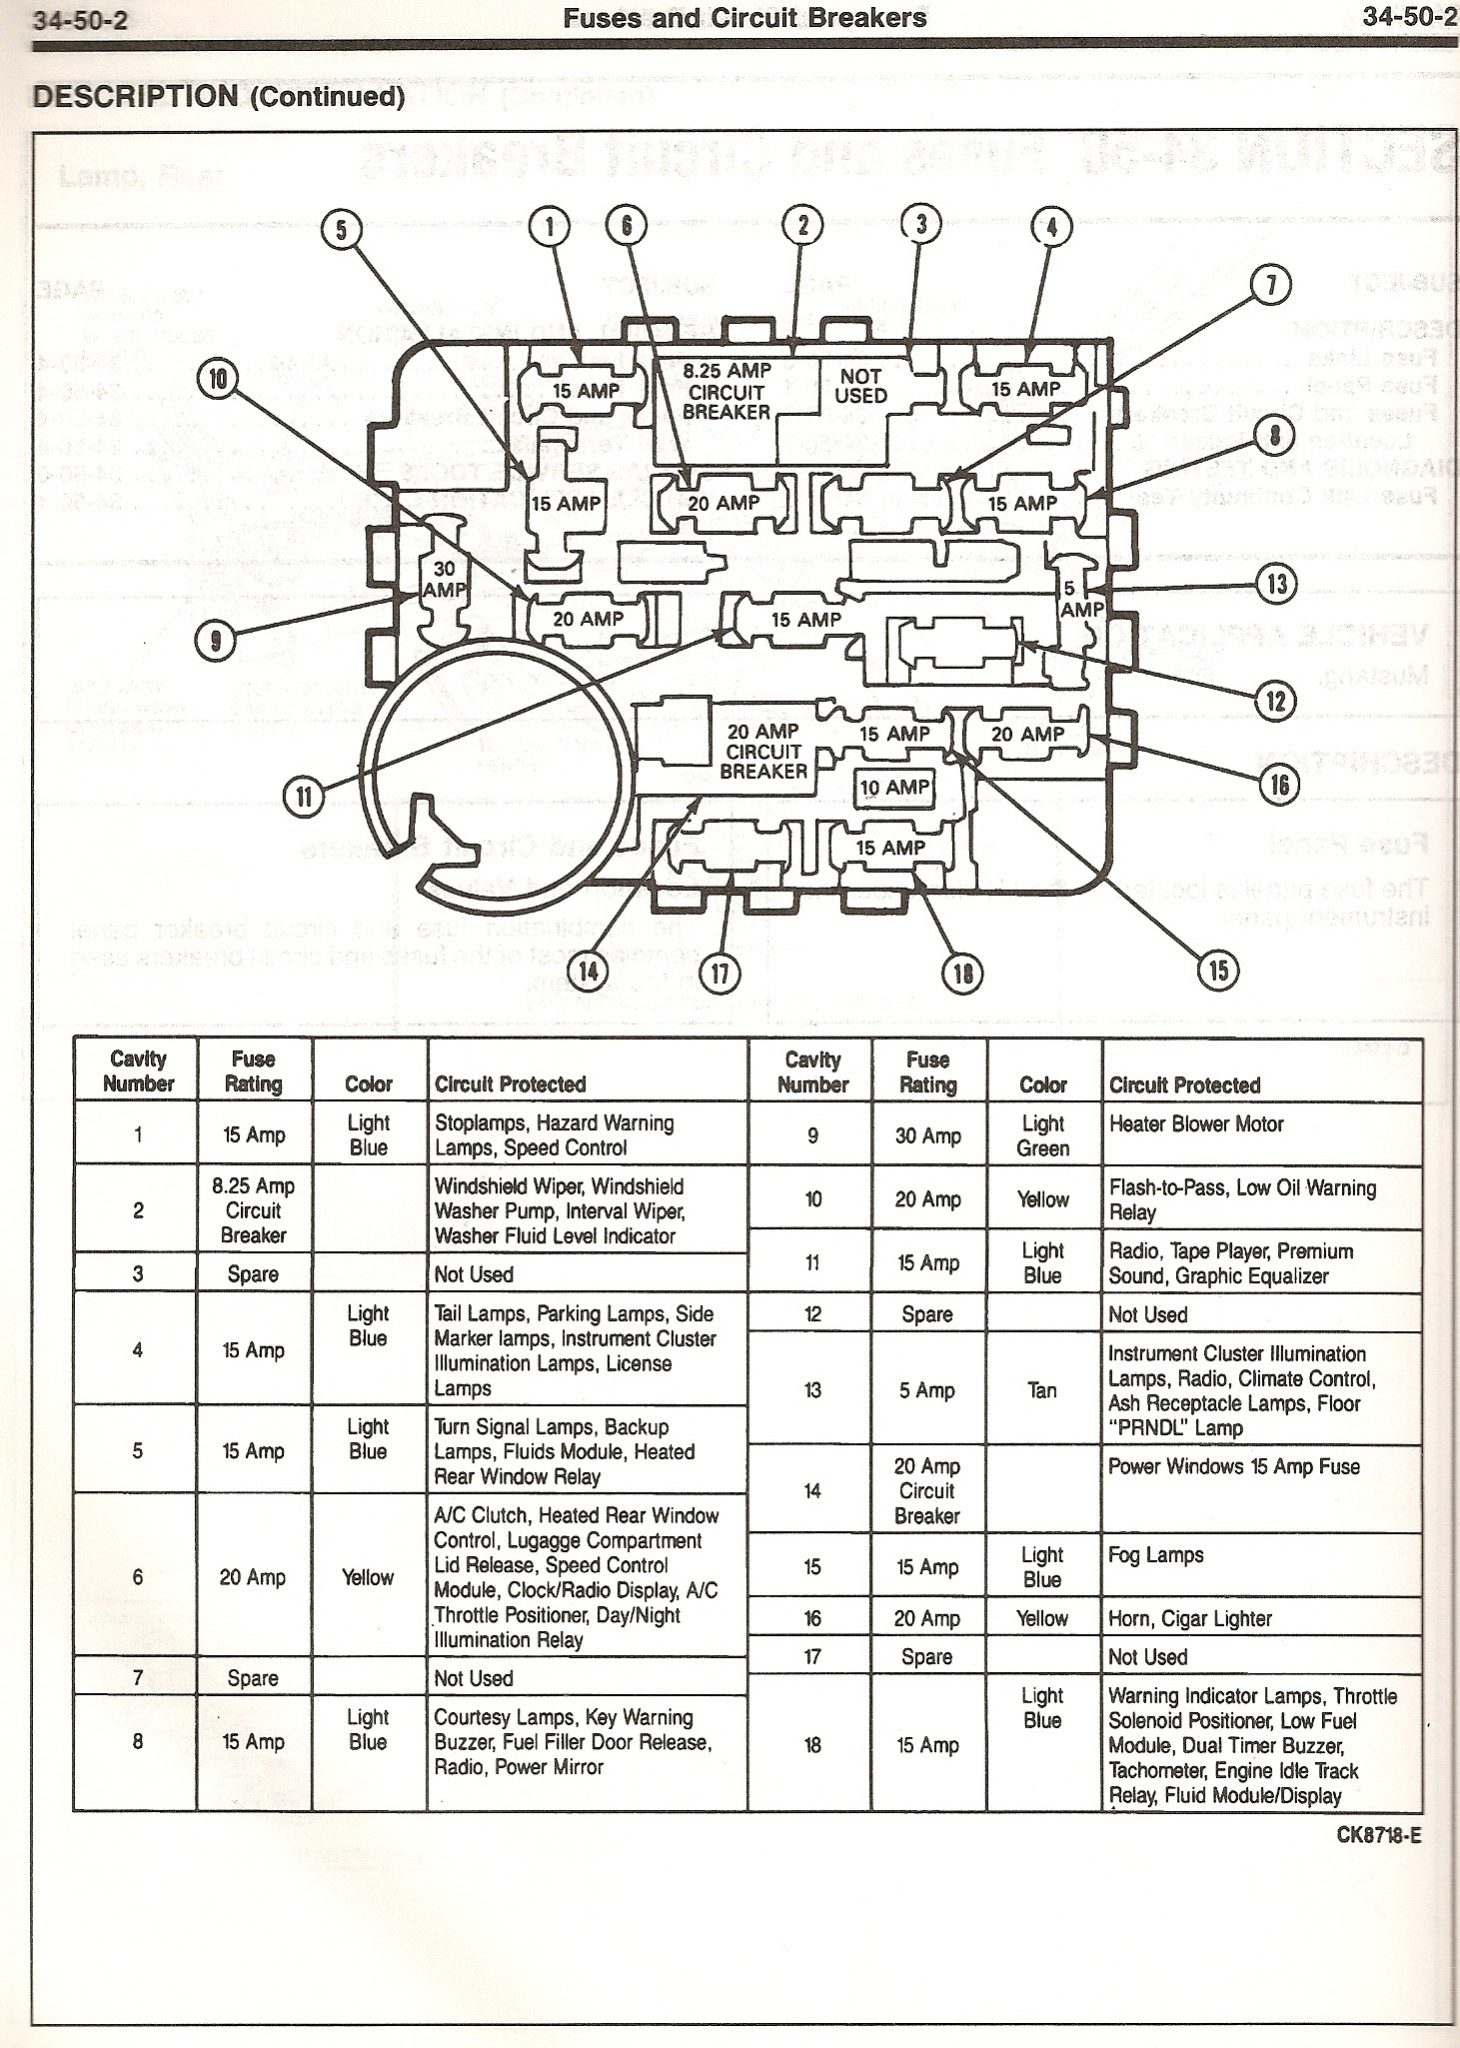 92 mustang fuse box wiring diagrams electrical 1970 mustang fuse box diagram 87 mustang fuse box [ 1460 x 2048 Pixel ]